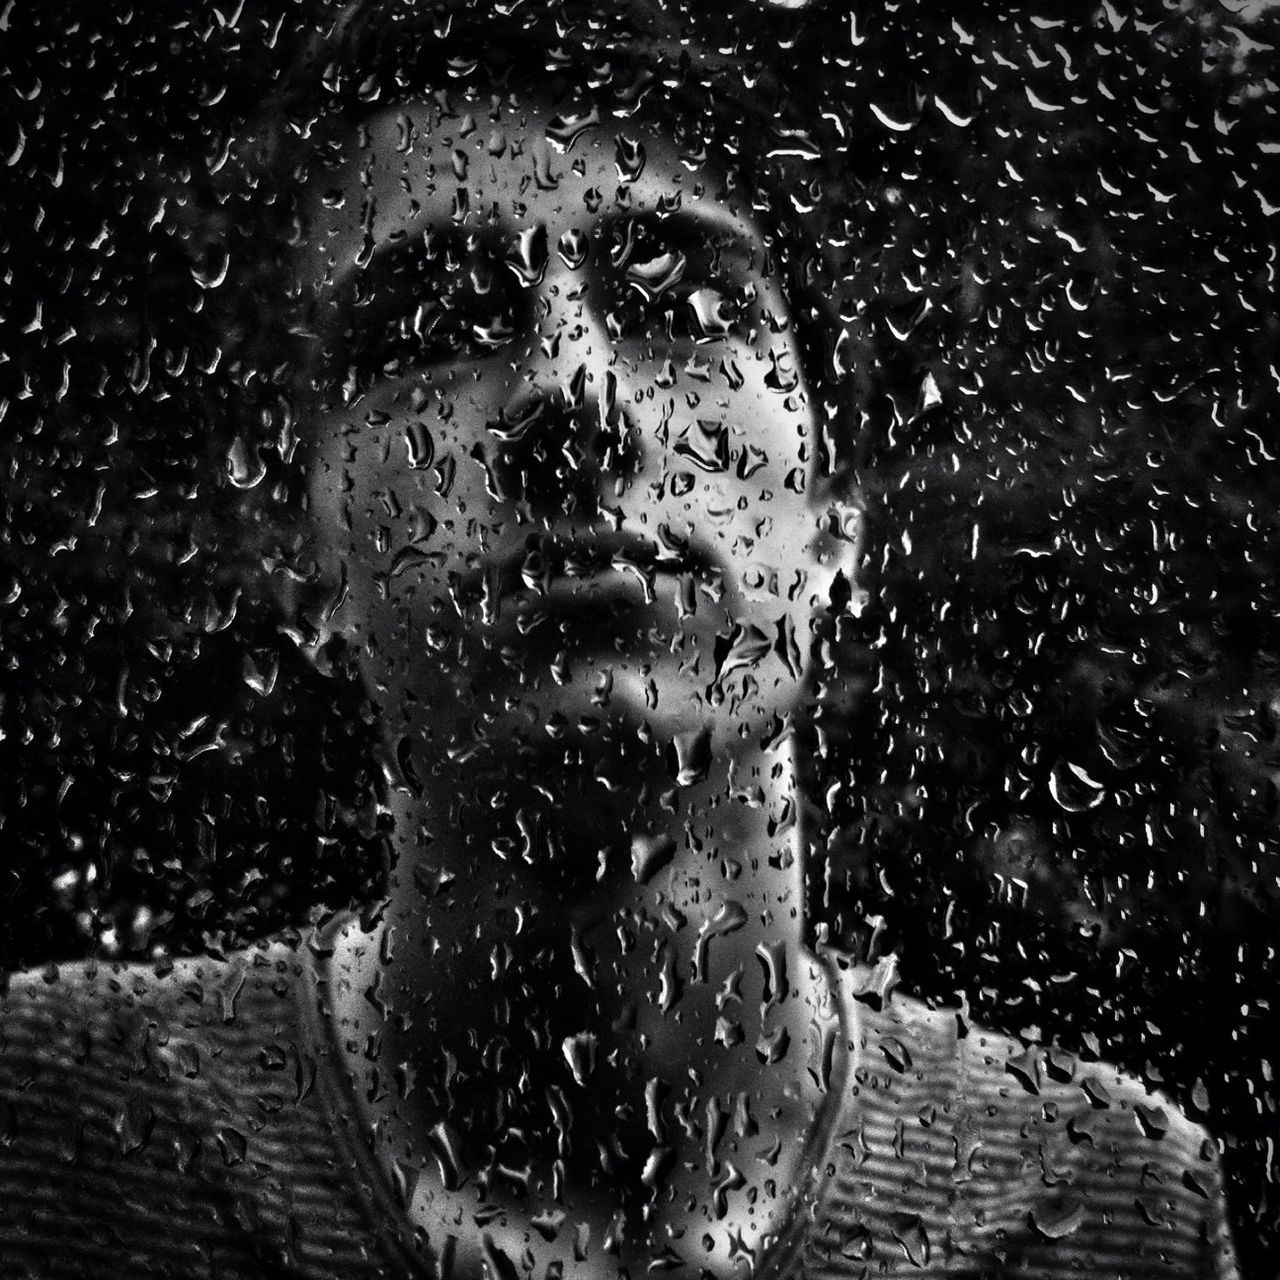 Close-up of man behind glass with waterdrops